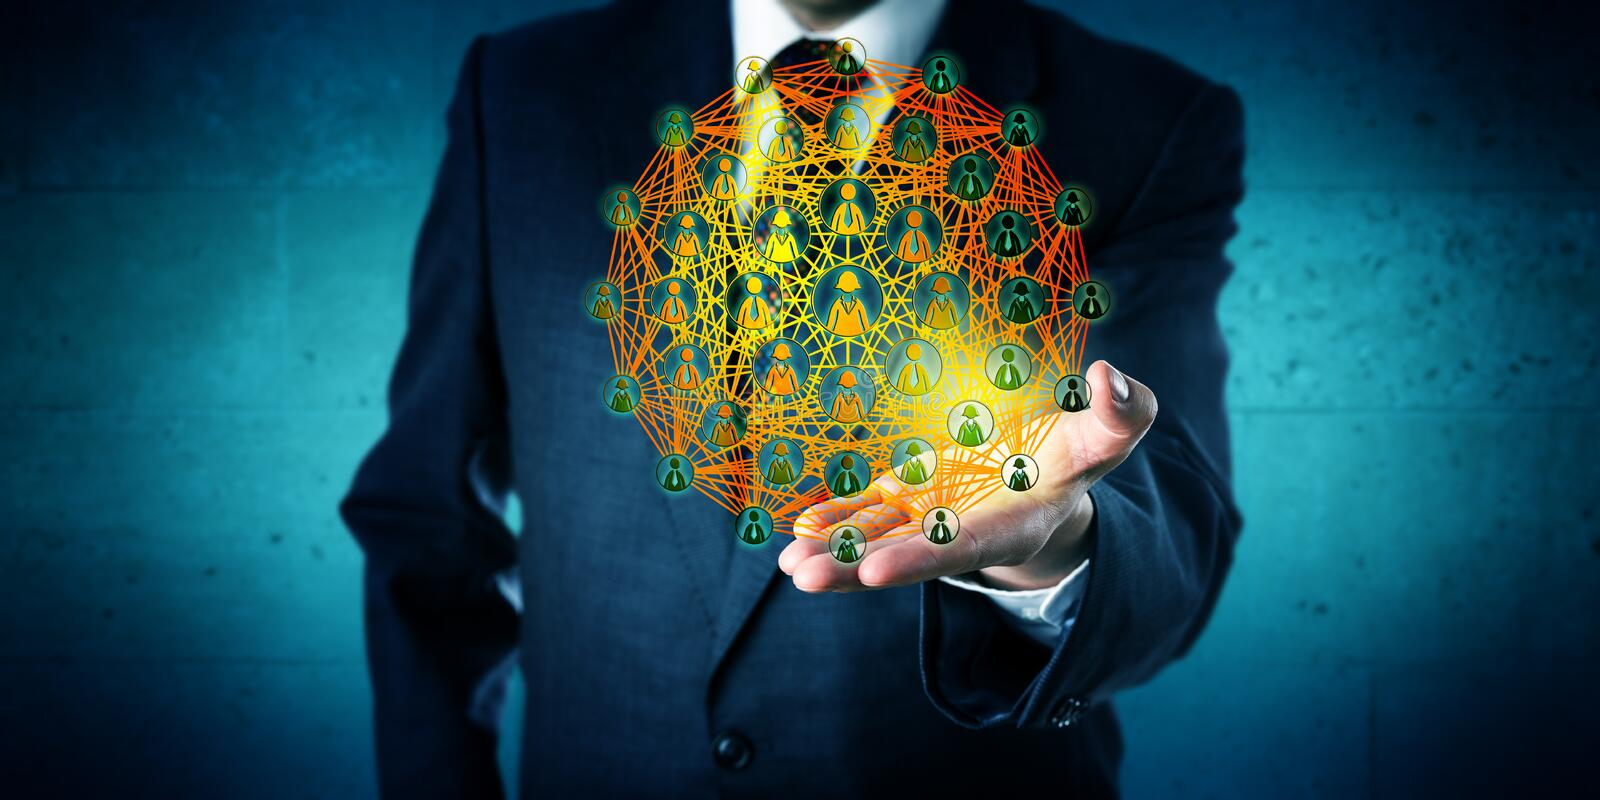 Business Consultant Showing A Global Network stock image